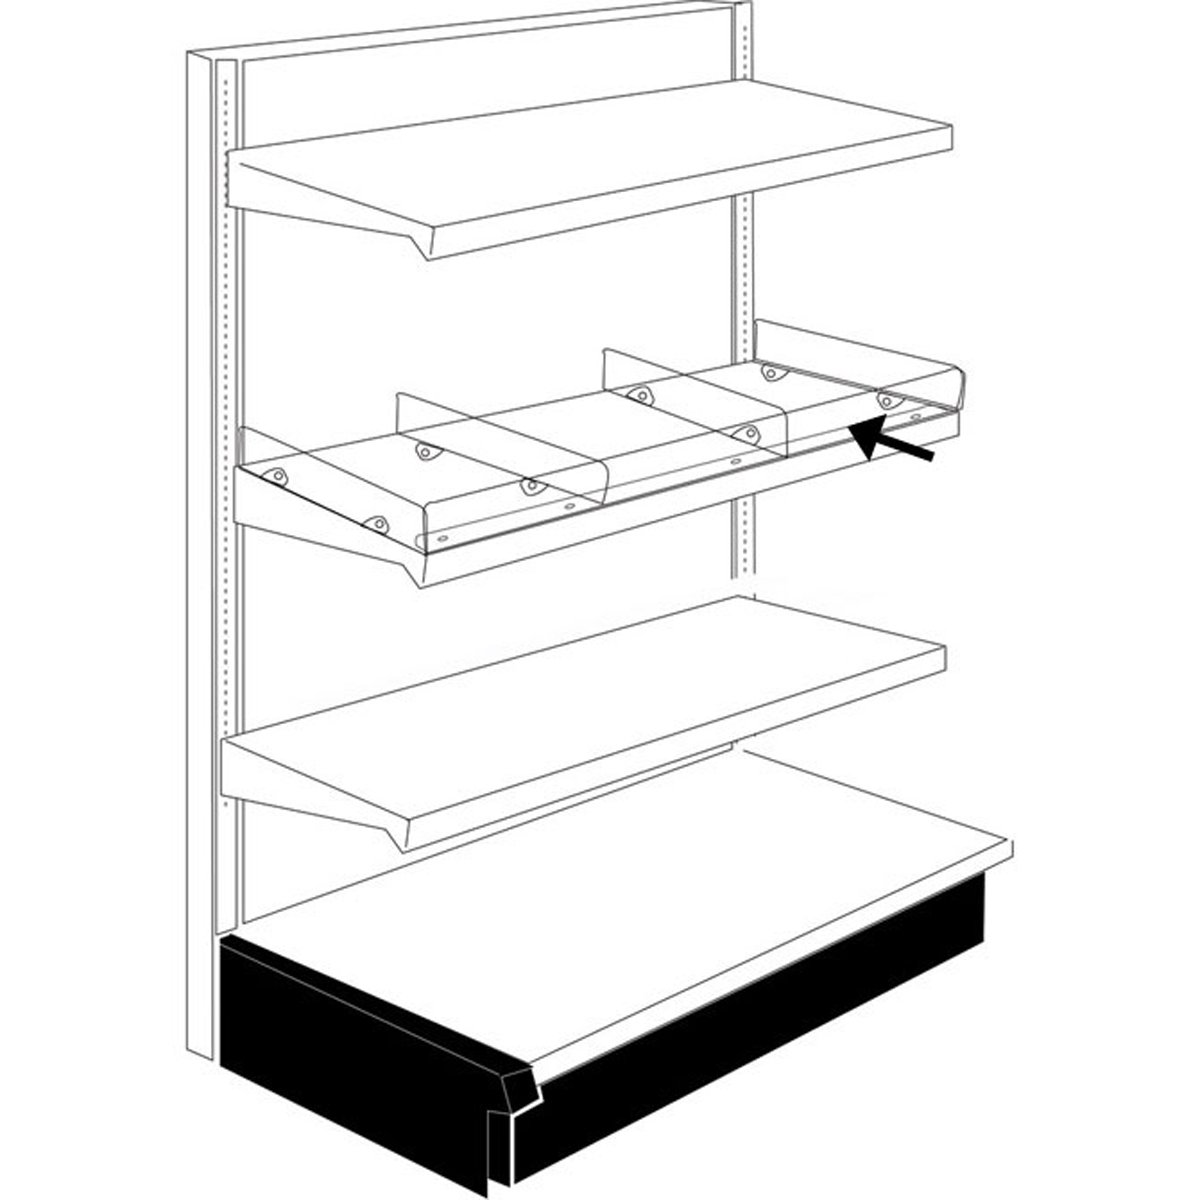 Acrylic Front Fencing Gondola Shelving 48 x 3 Retail Store Display Fixture Clear Lot of 25 NEW